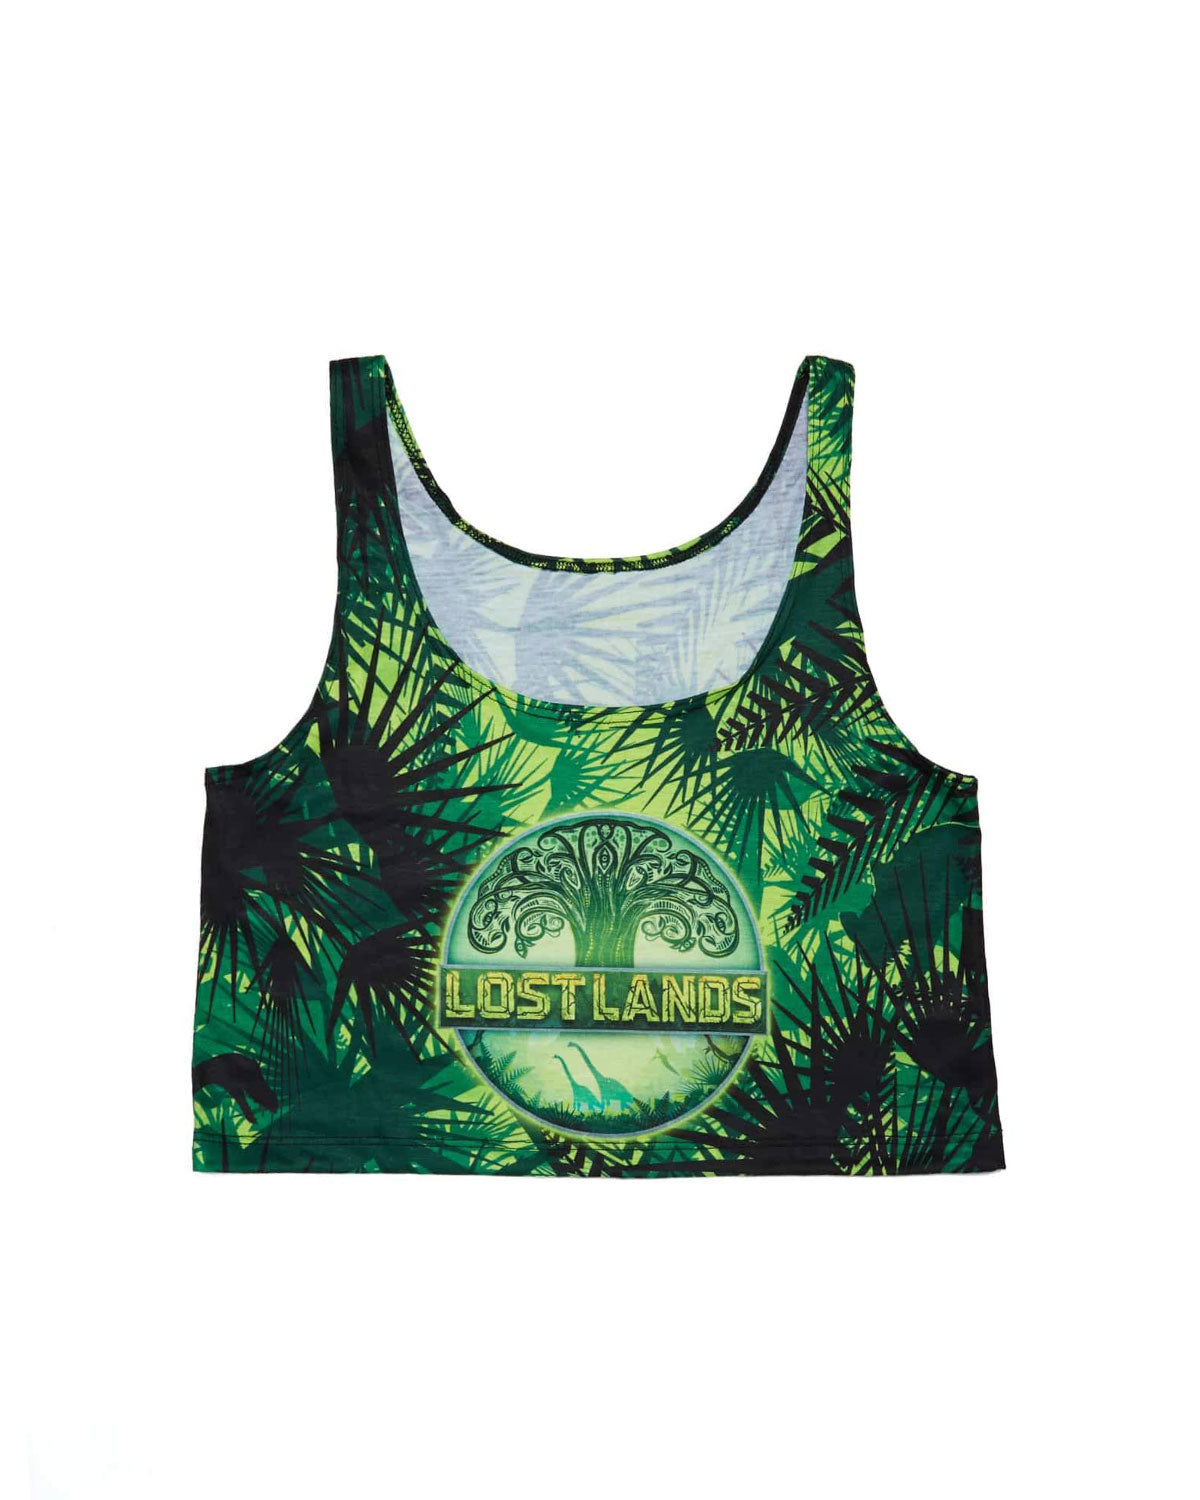 Lost Lands 'Foliage' Women's Crop Top (Green)